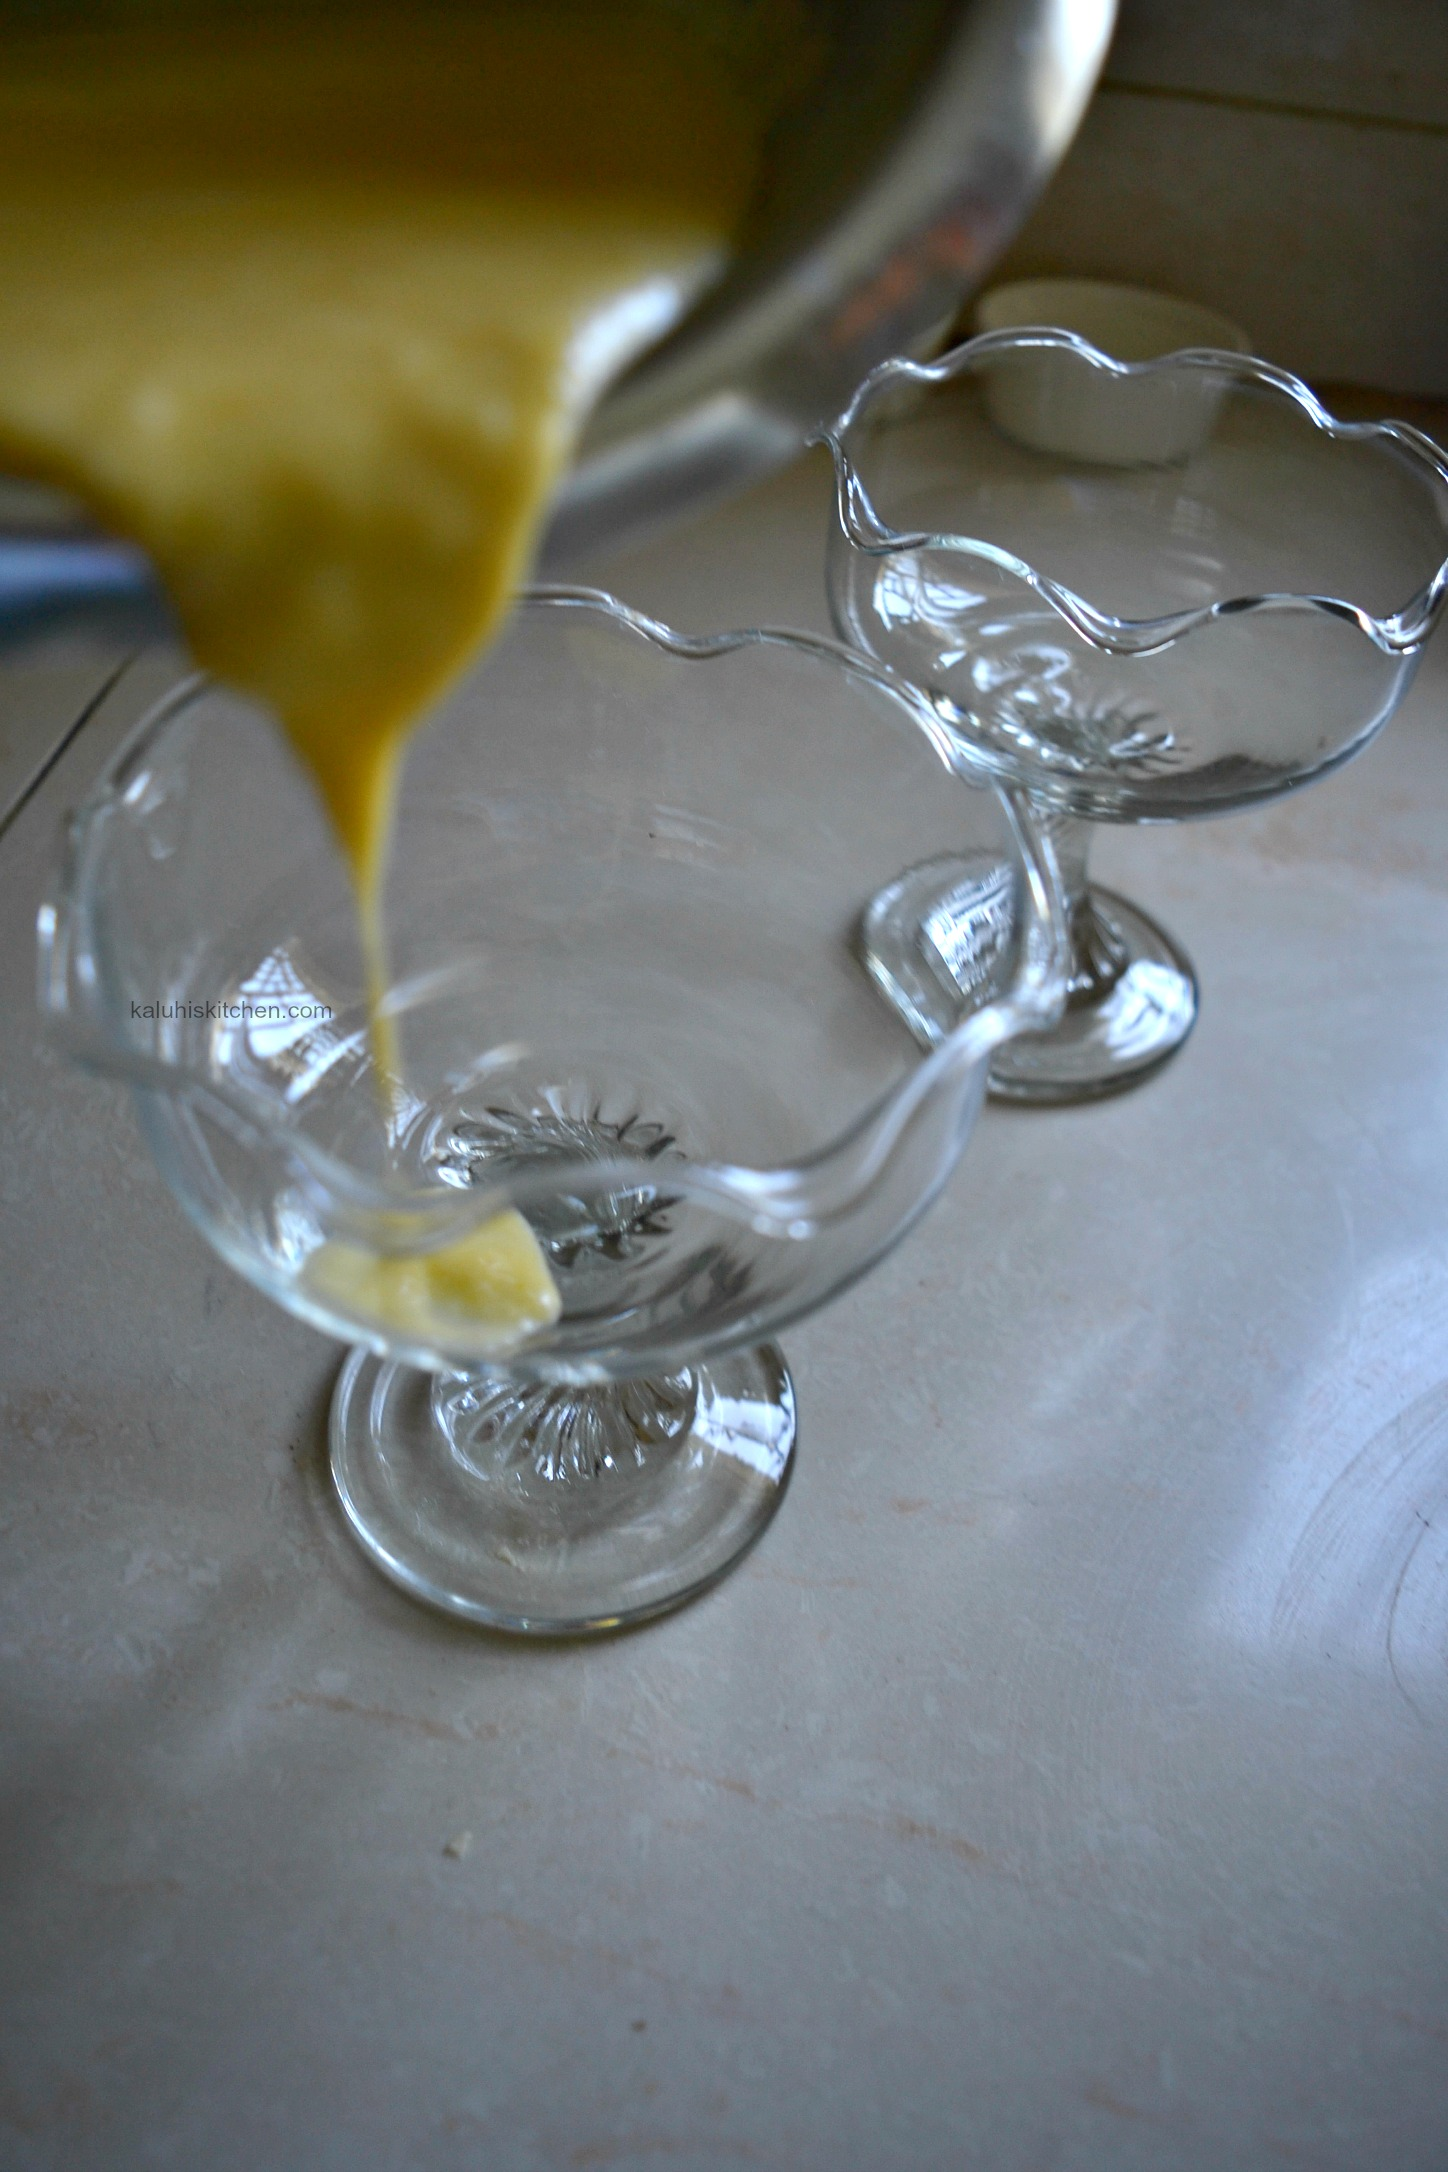 pour your green mango posset mixture into a glass when it has slightly cooled down so that the glass does not crack_how to make a posset_kaluhiskitchen.com